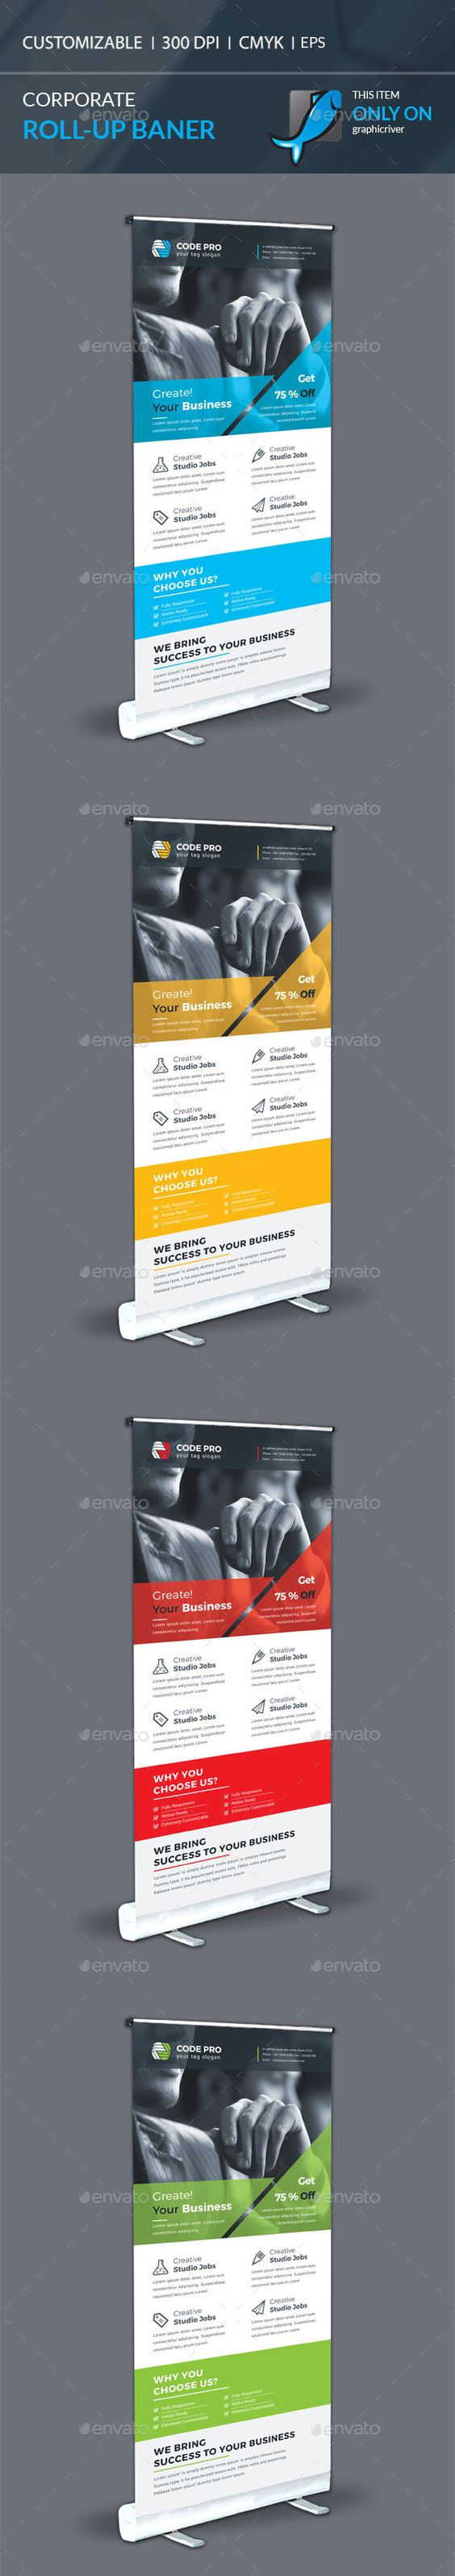 Corporate Roll-up Banner | Rollup banner, Banner template and Ai ...